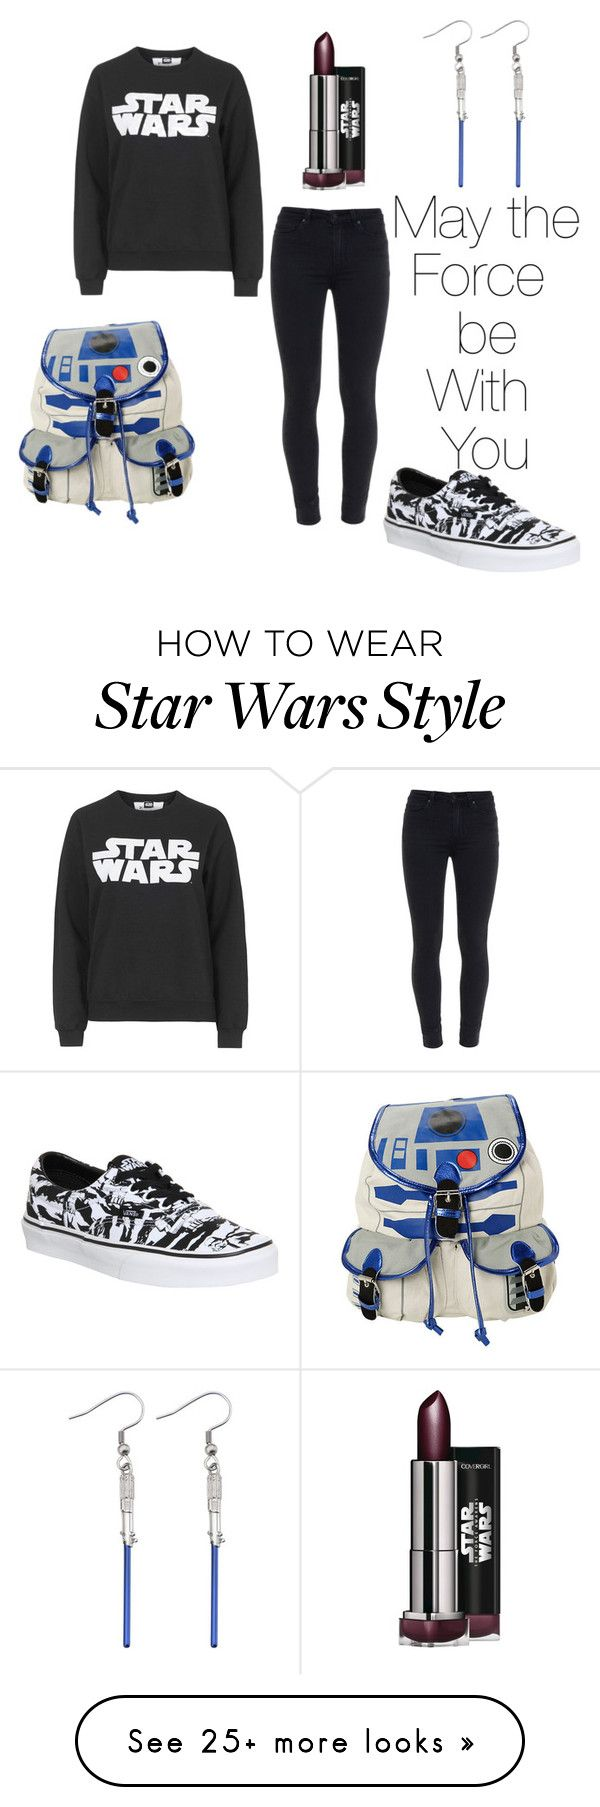 """Star Wars"" by esteficamicaro on Polyvore featuring Tee and Cake, Paige Denim, R2 and Vans"